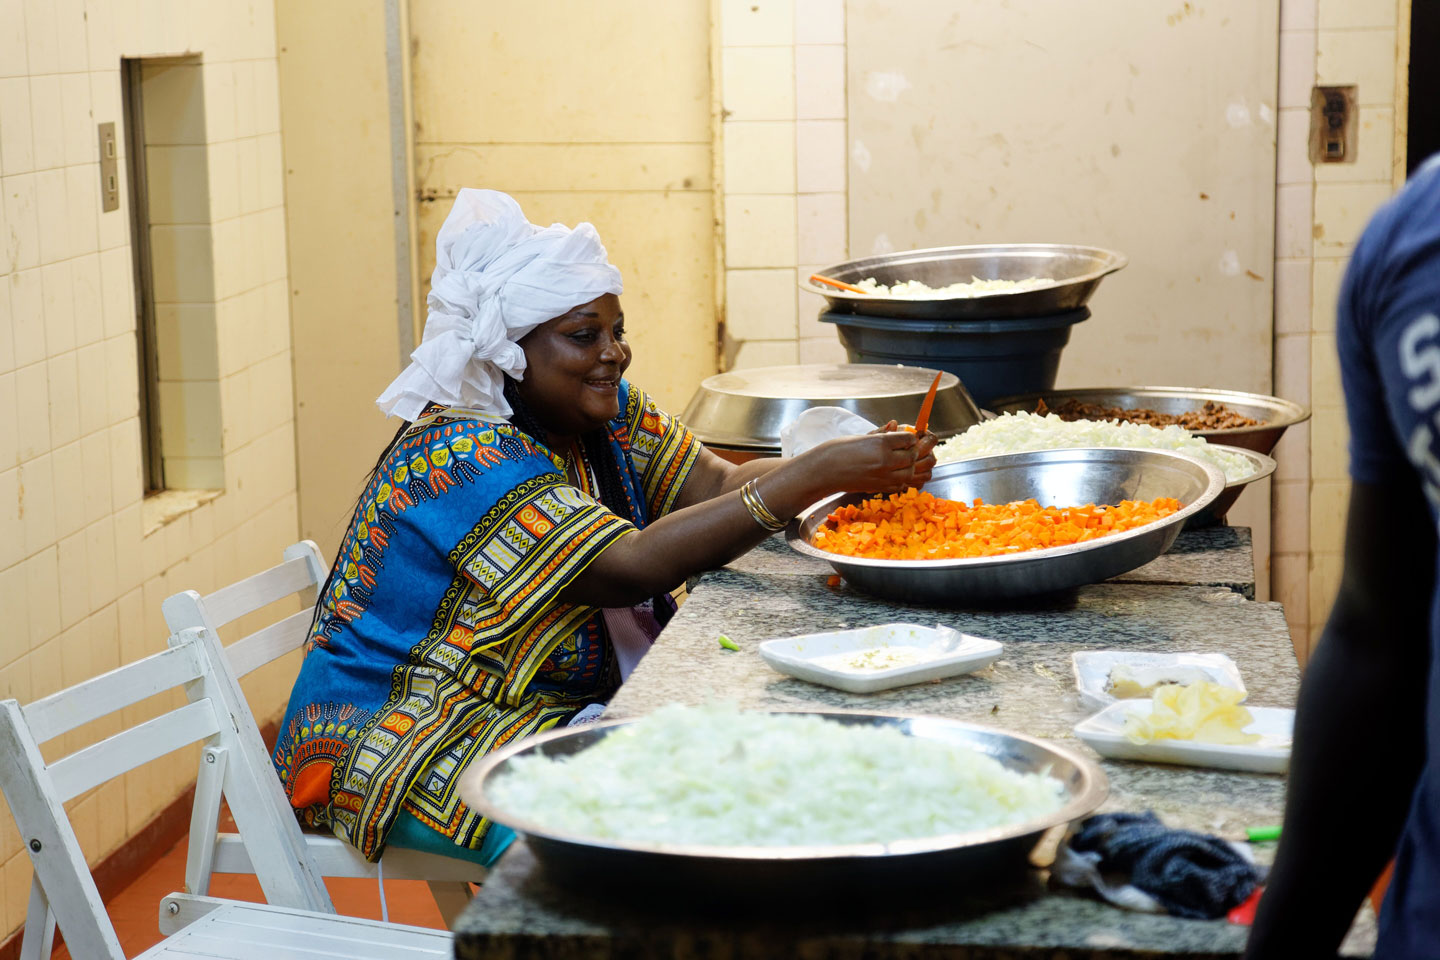 Senegalese woman cooking argentinian food